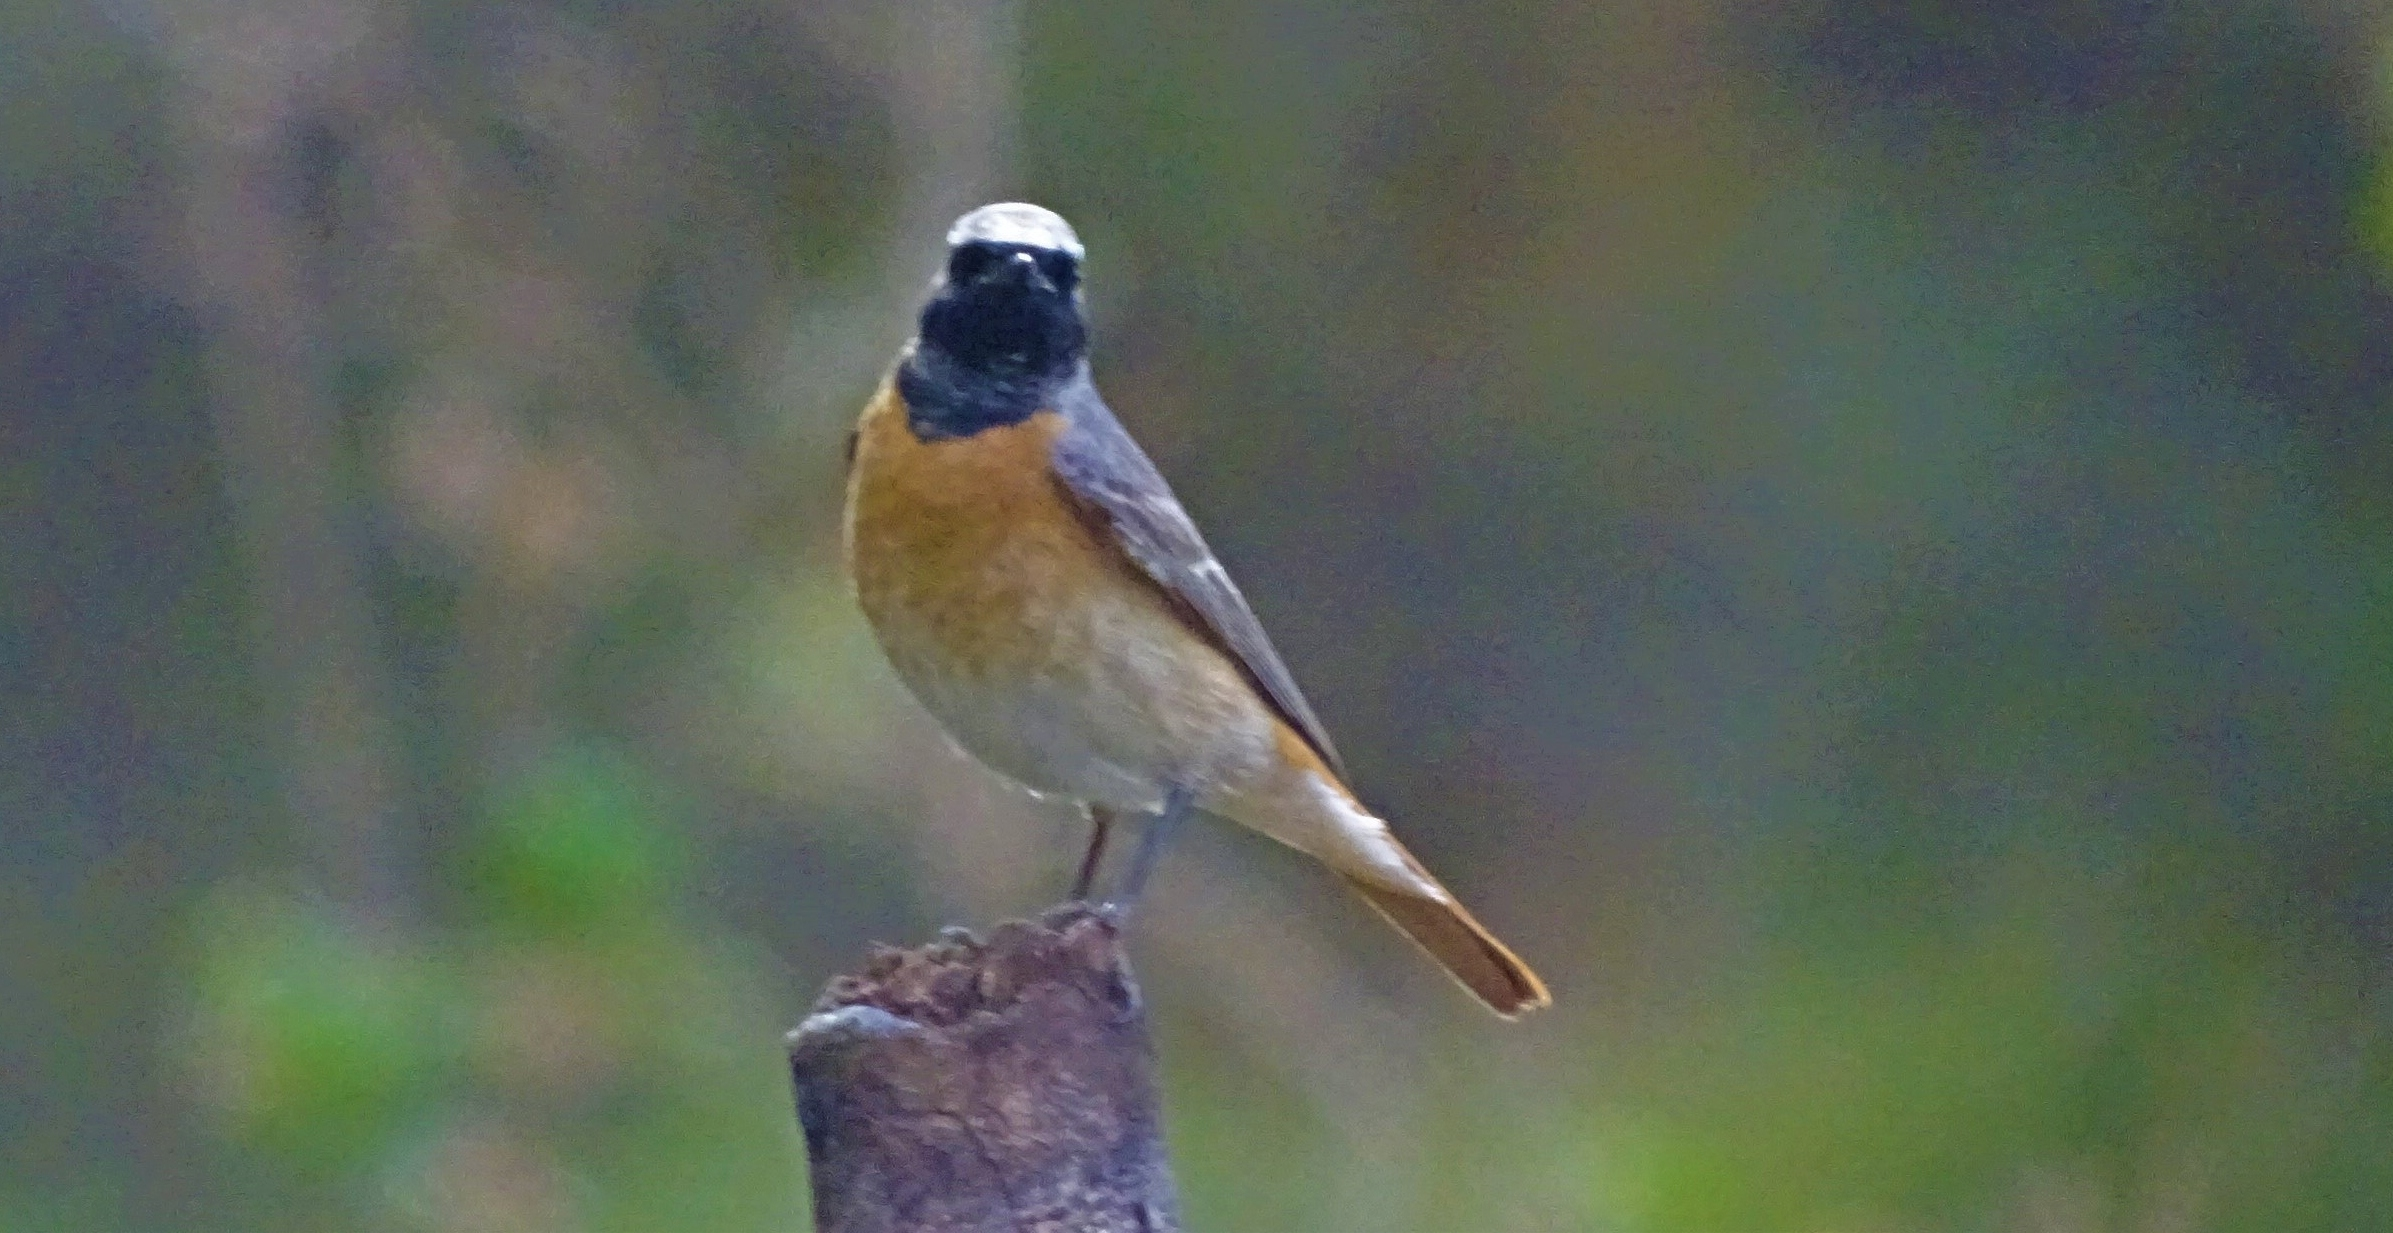 Flying High – the Common Redstart Spotted on Lewa and Scaling our Avifauna Research